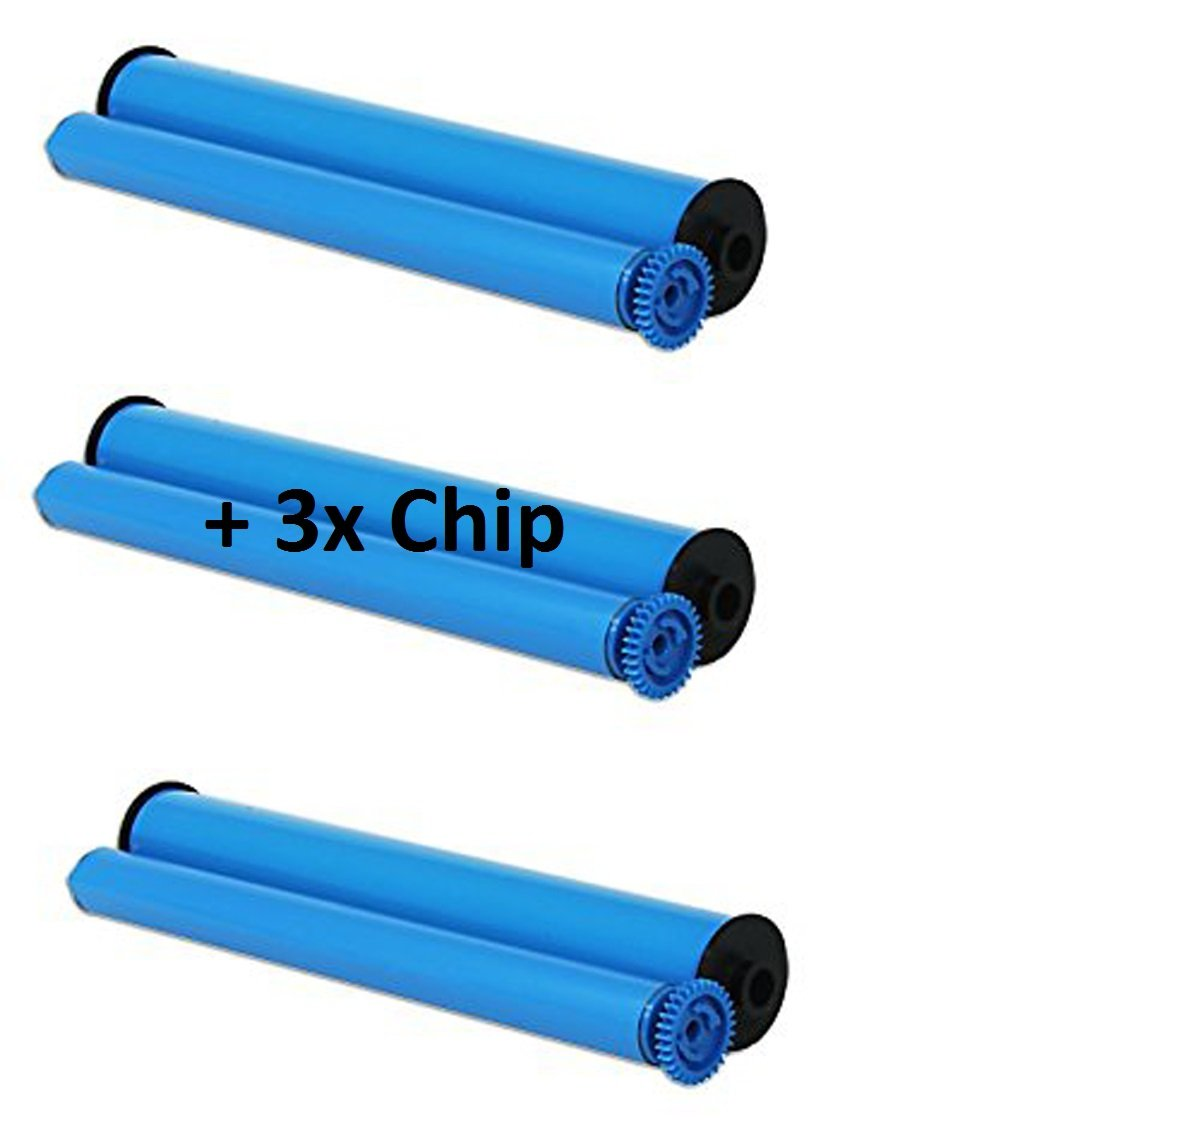 4x Inkfilm kompatibel mit Philips Magic 5 Basic//Philips Magic 5 Basic Dect//Philips Magic 5 Coulor Dect//Philips Magic 5 Eco Basic Dect//Philips Magic 5 Eco Classic//Philips Magic 5 Eco Primo